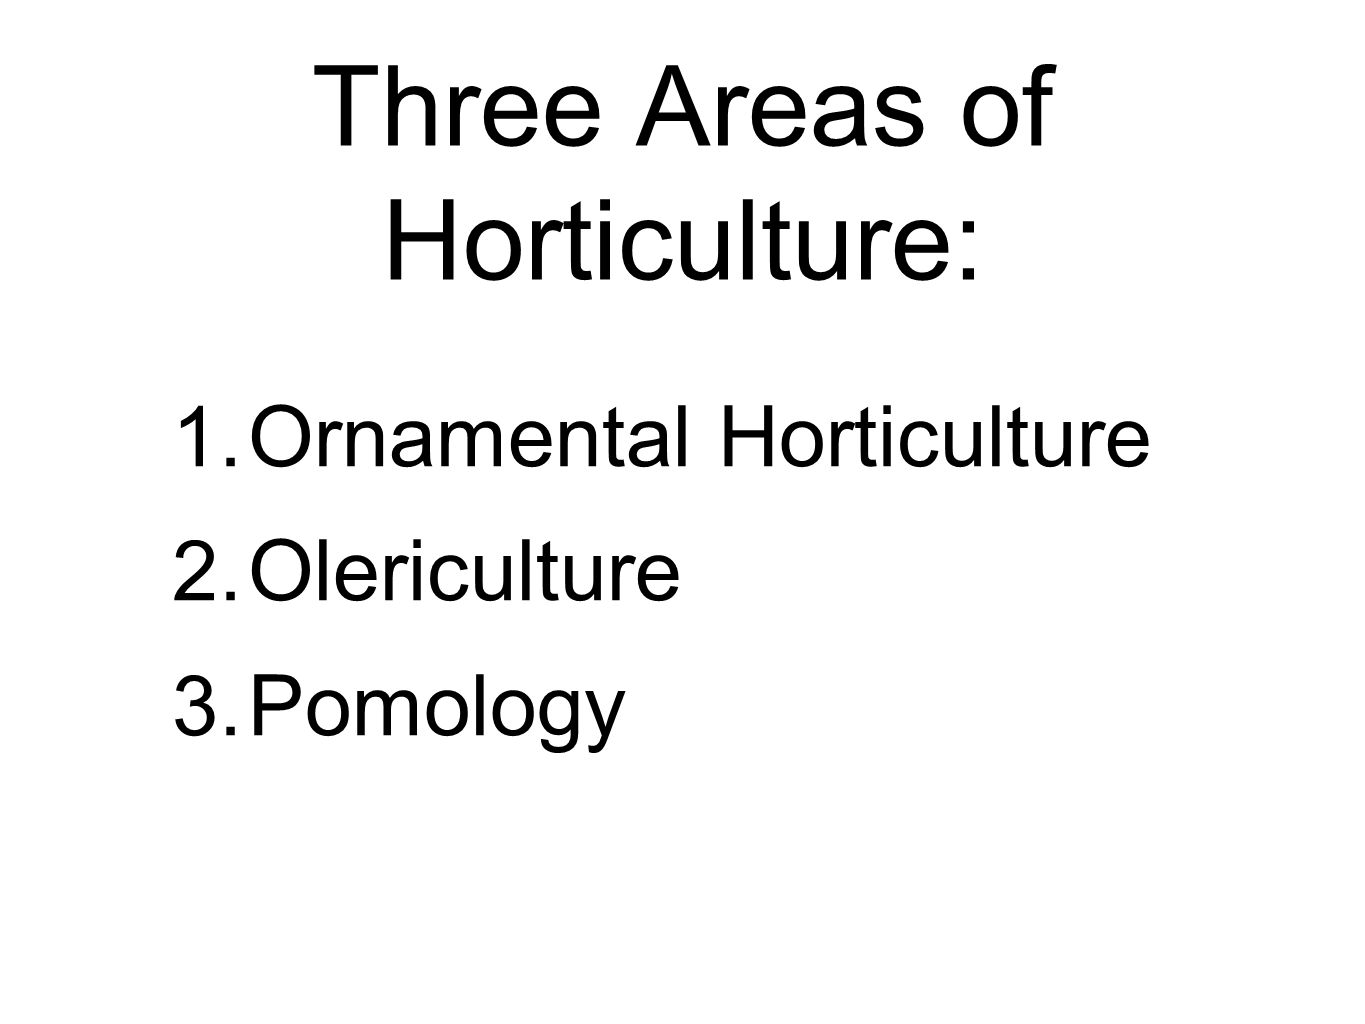 Three Areas of Horticulture: